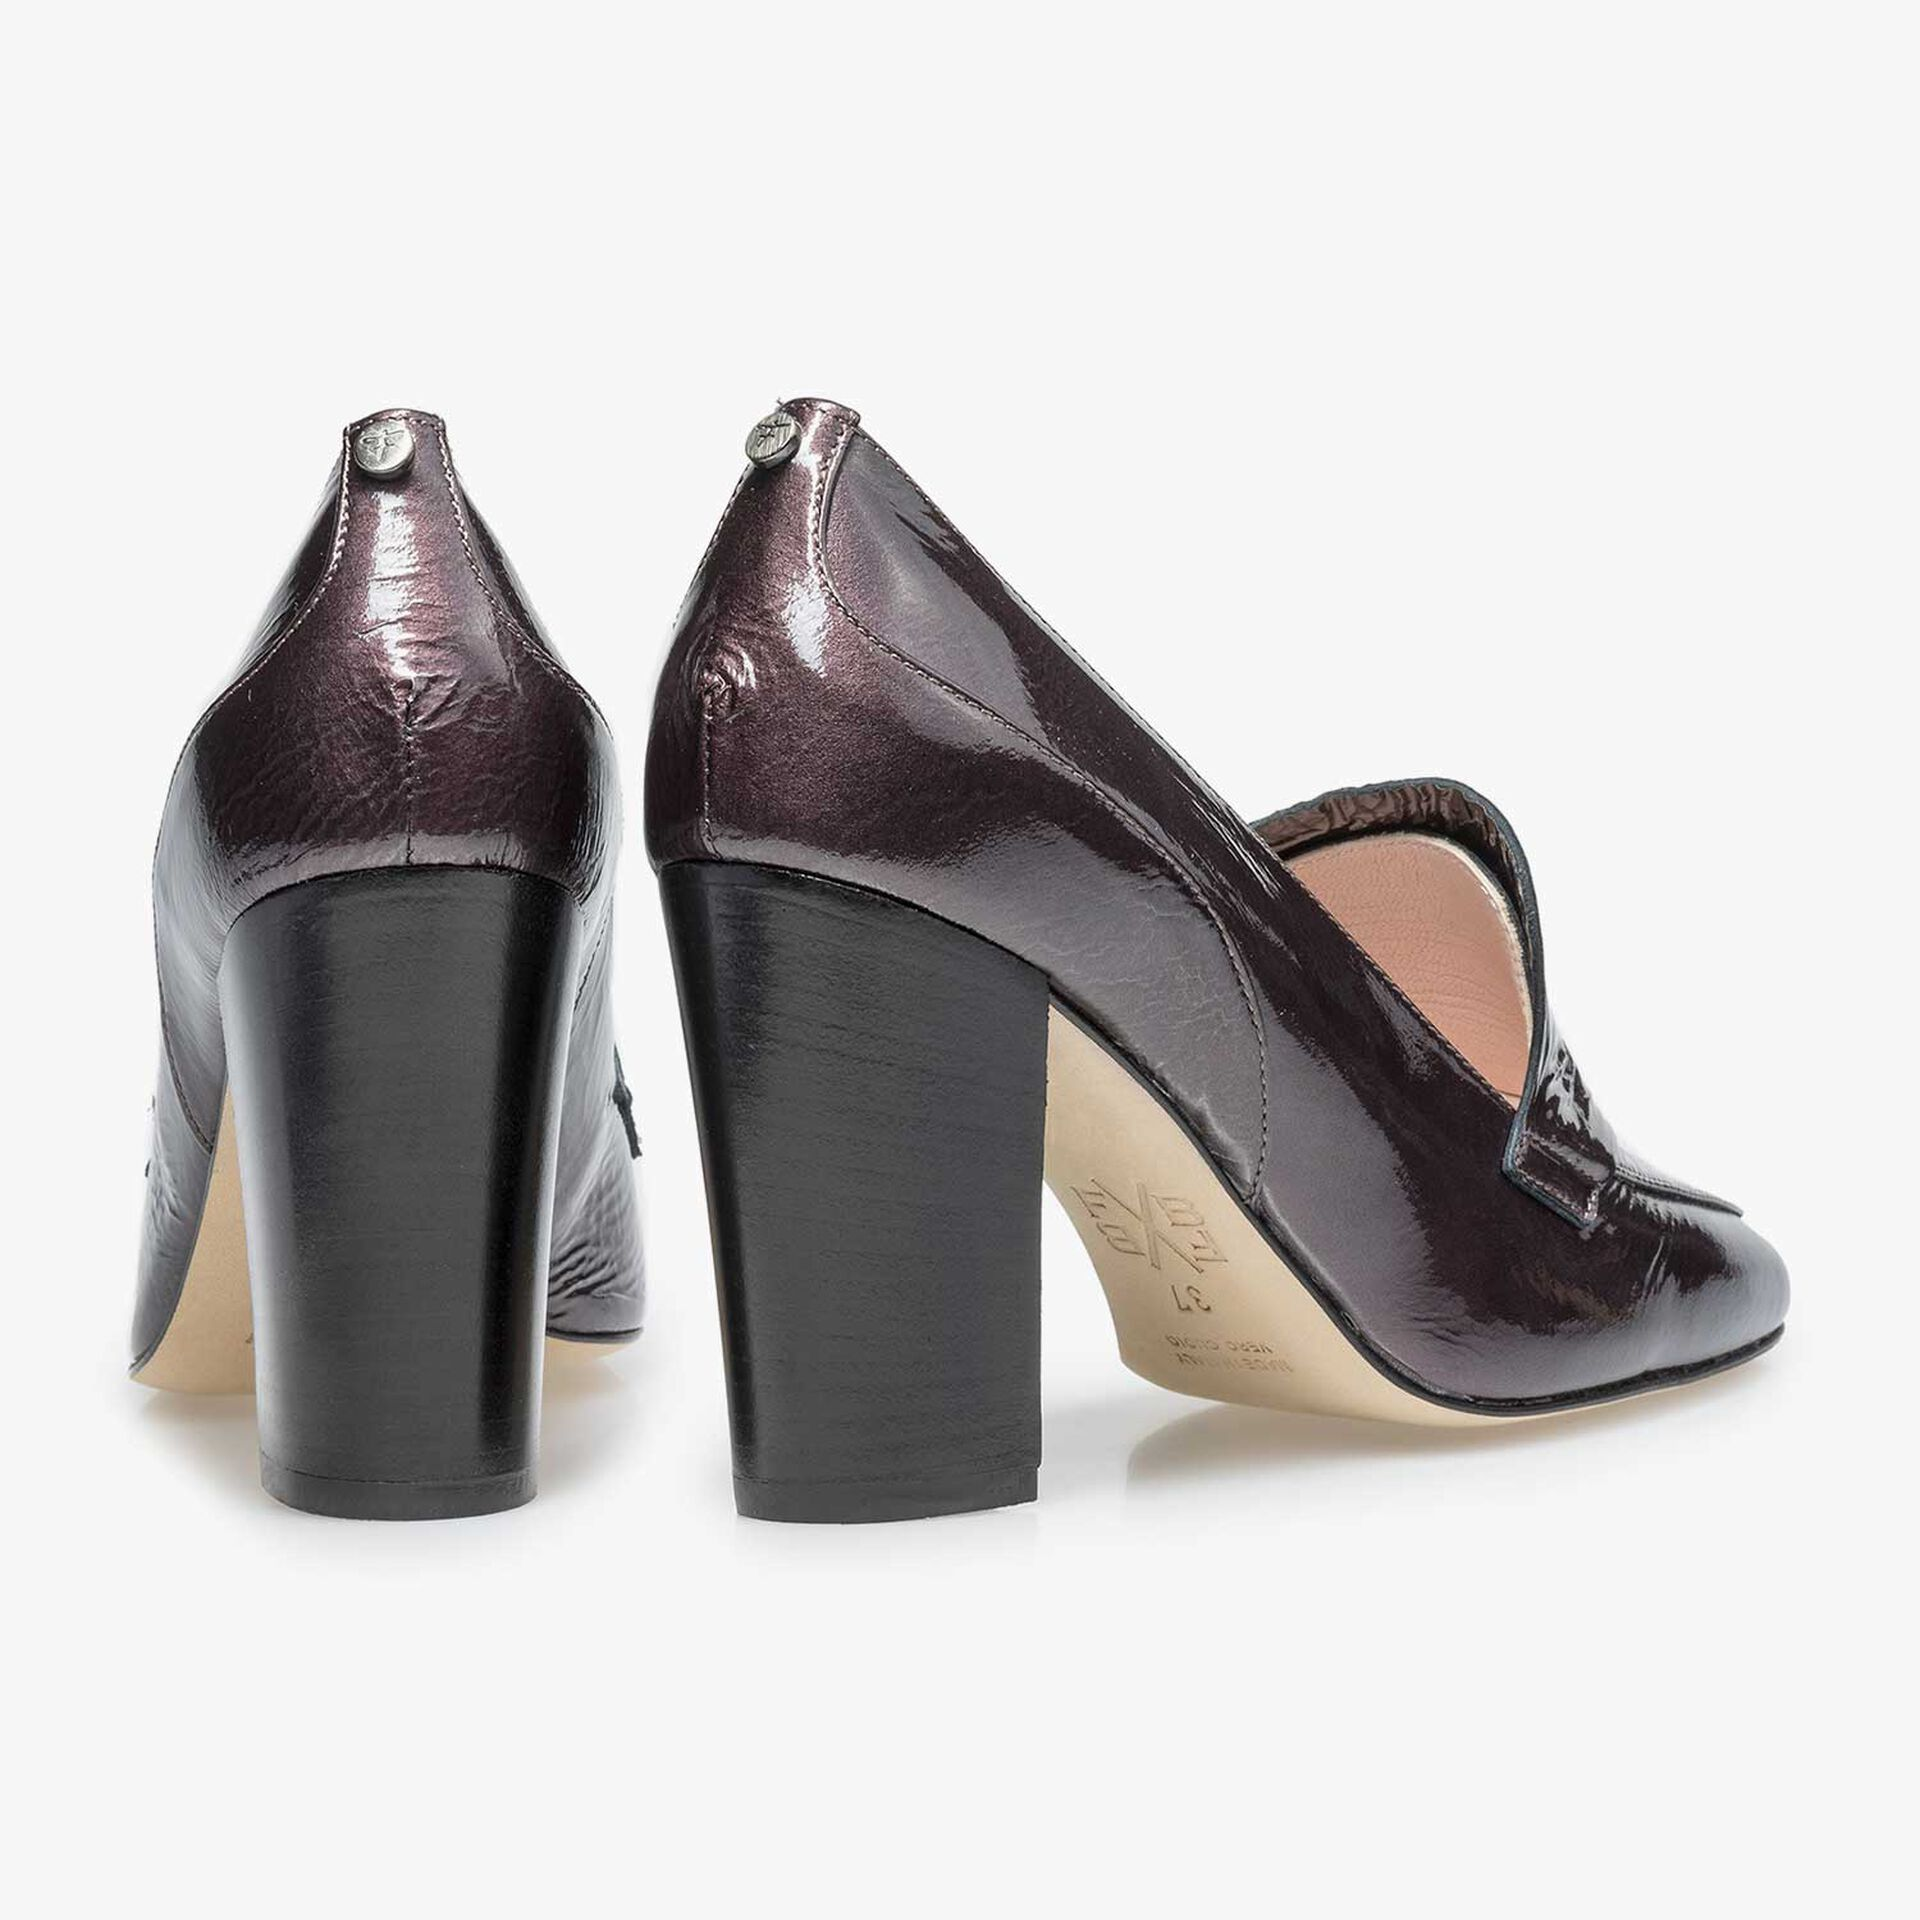 Burgundy red/taupe-coloured patent leather high heel with wrinkle effect